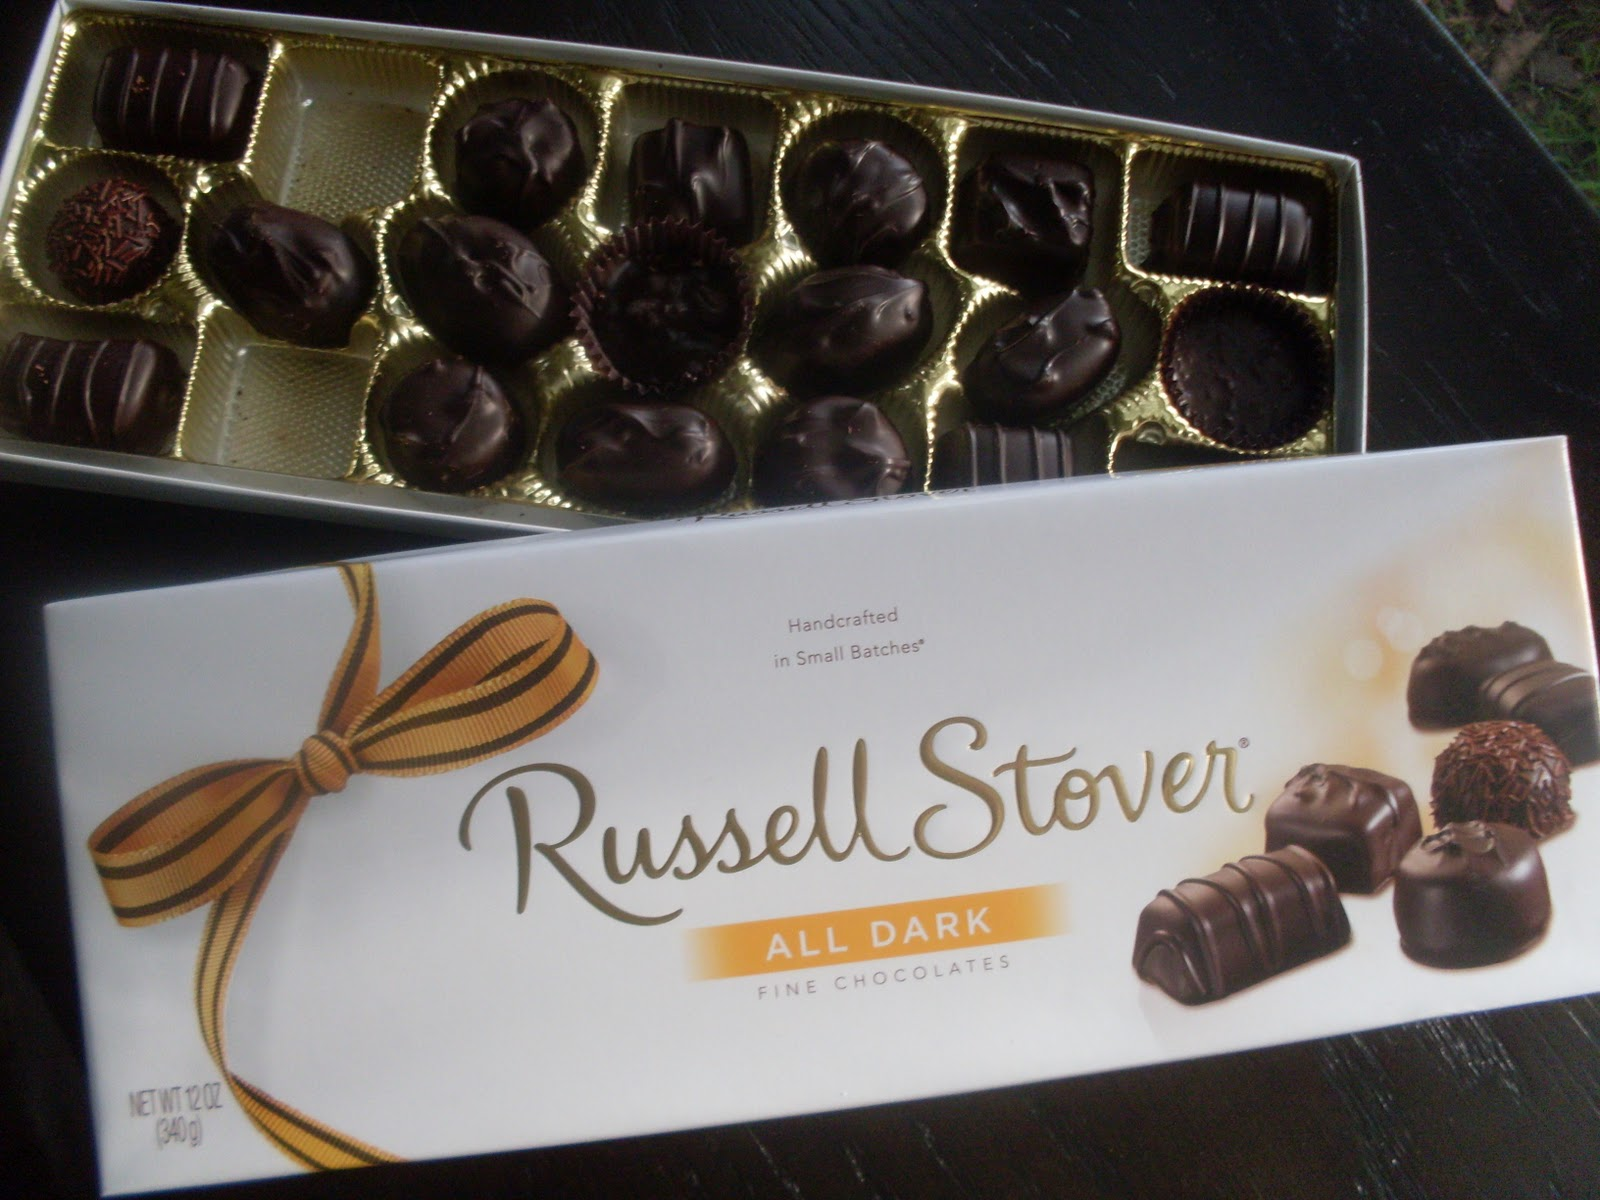 Adventures with Nancy Rose: Russell Stover, Russell Stover, Can ...